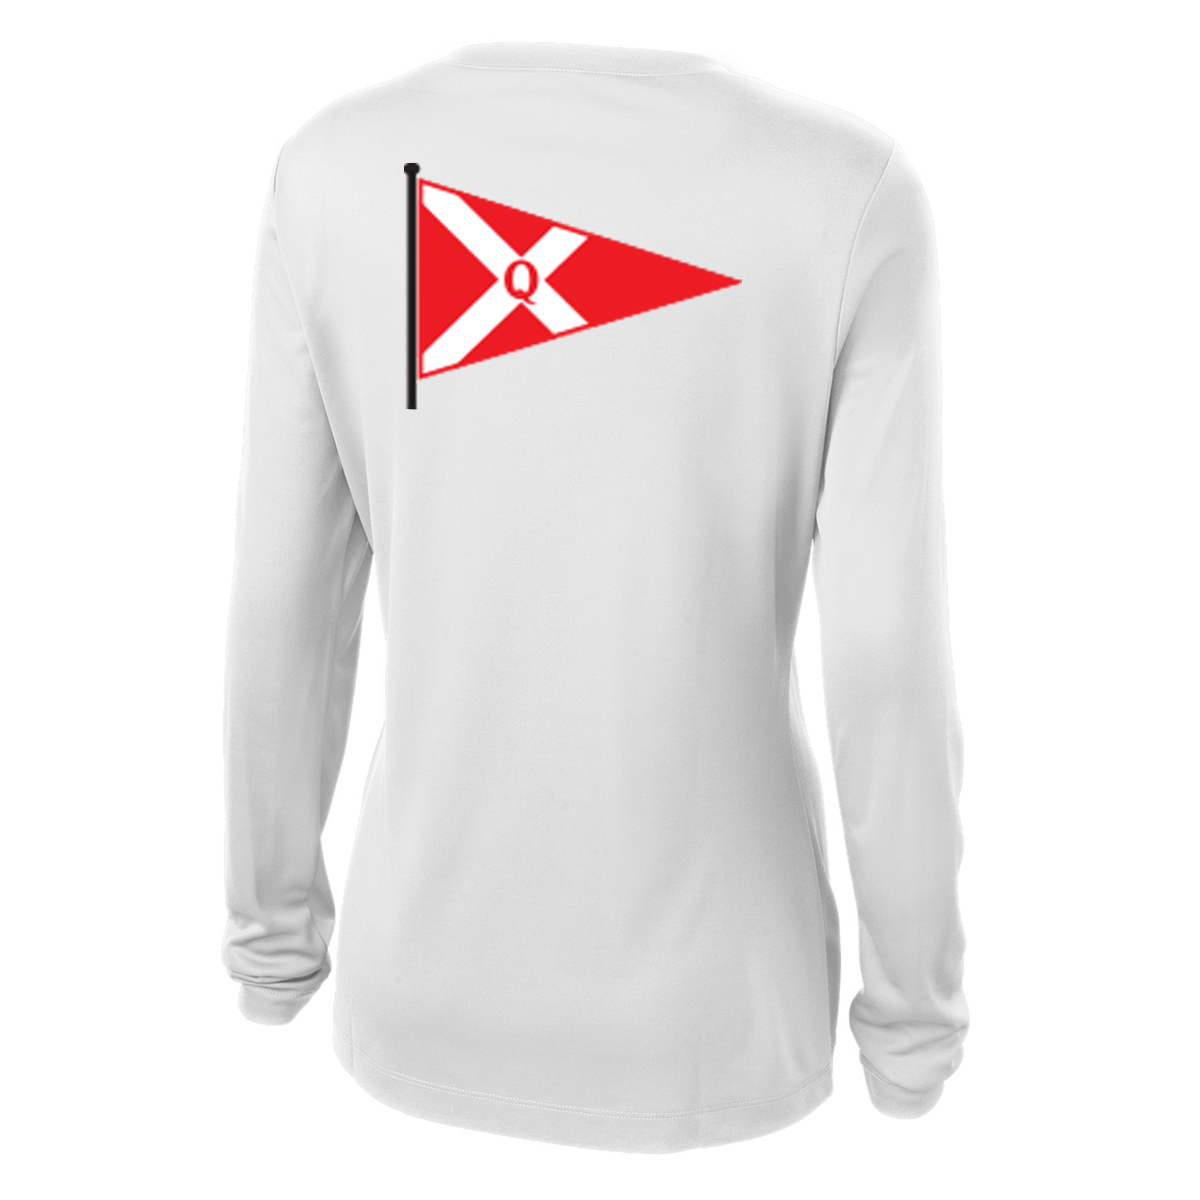 Quissett Yacht Club - Women's Long Sleeve Tech Tee (QYC302)